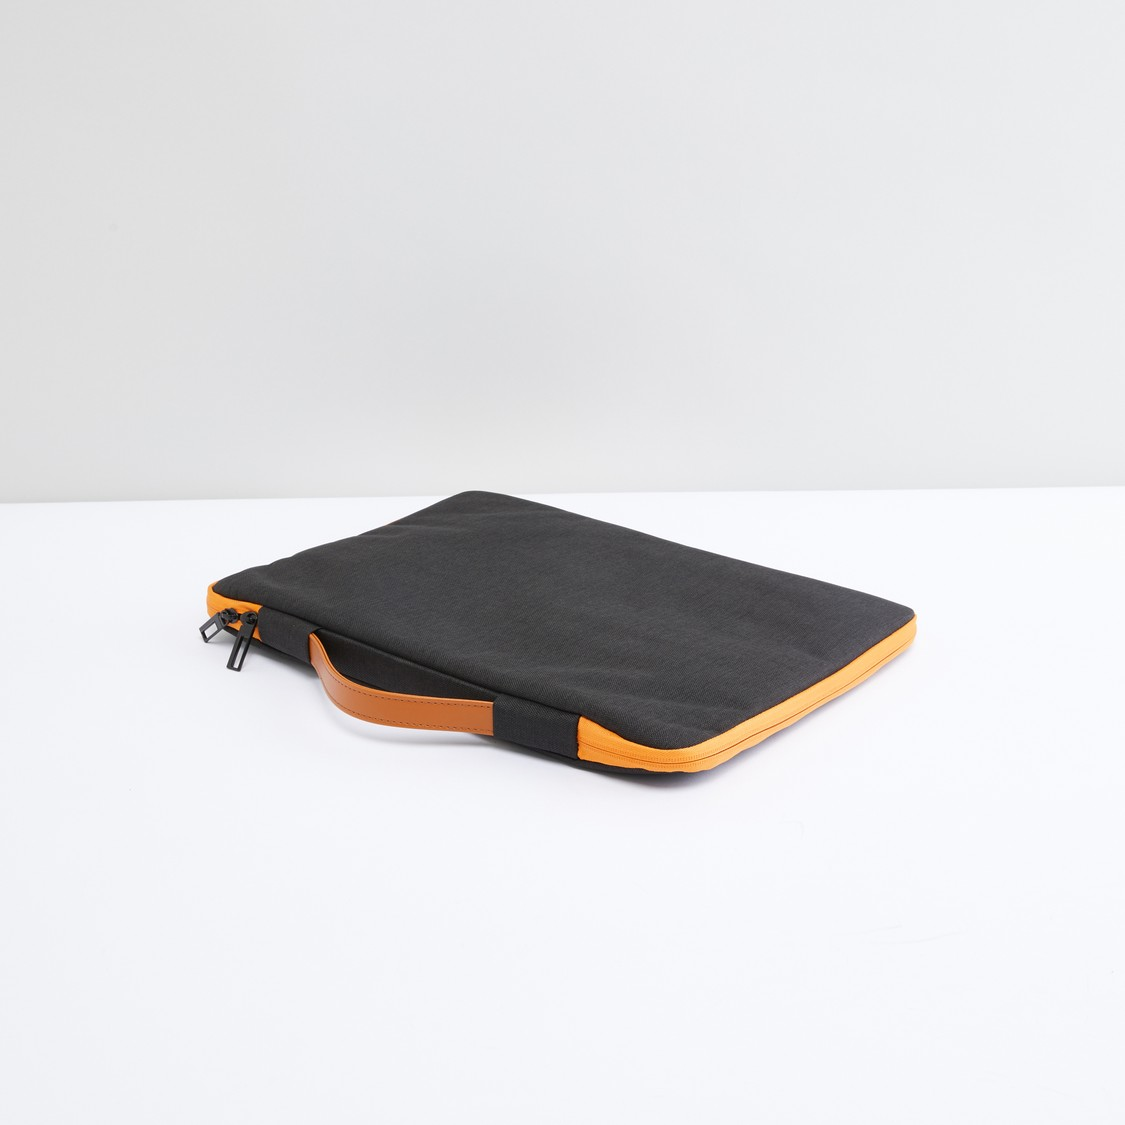 Laptop Sleeves with Zip Closure and Handle